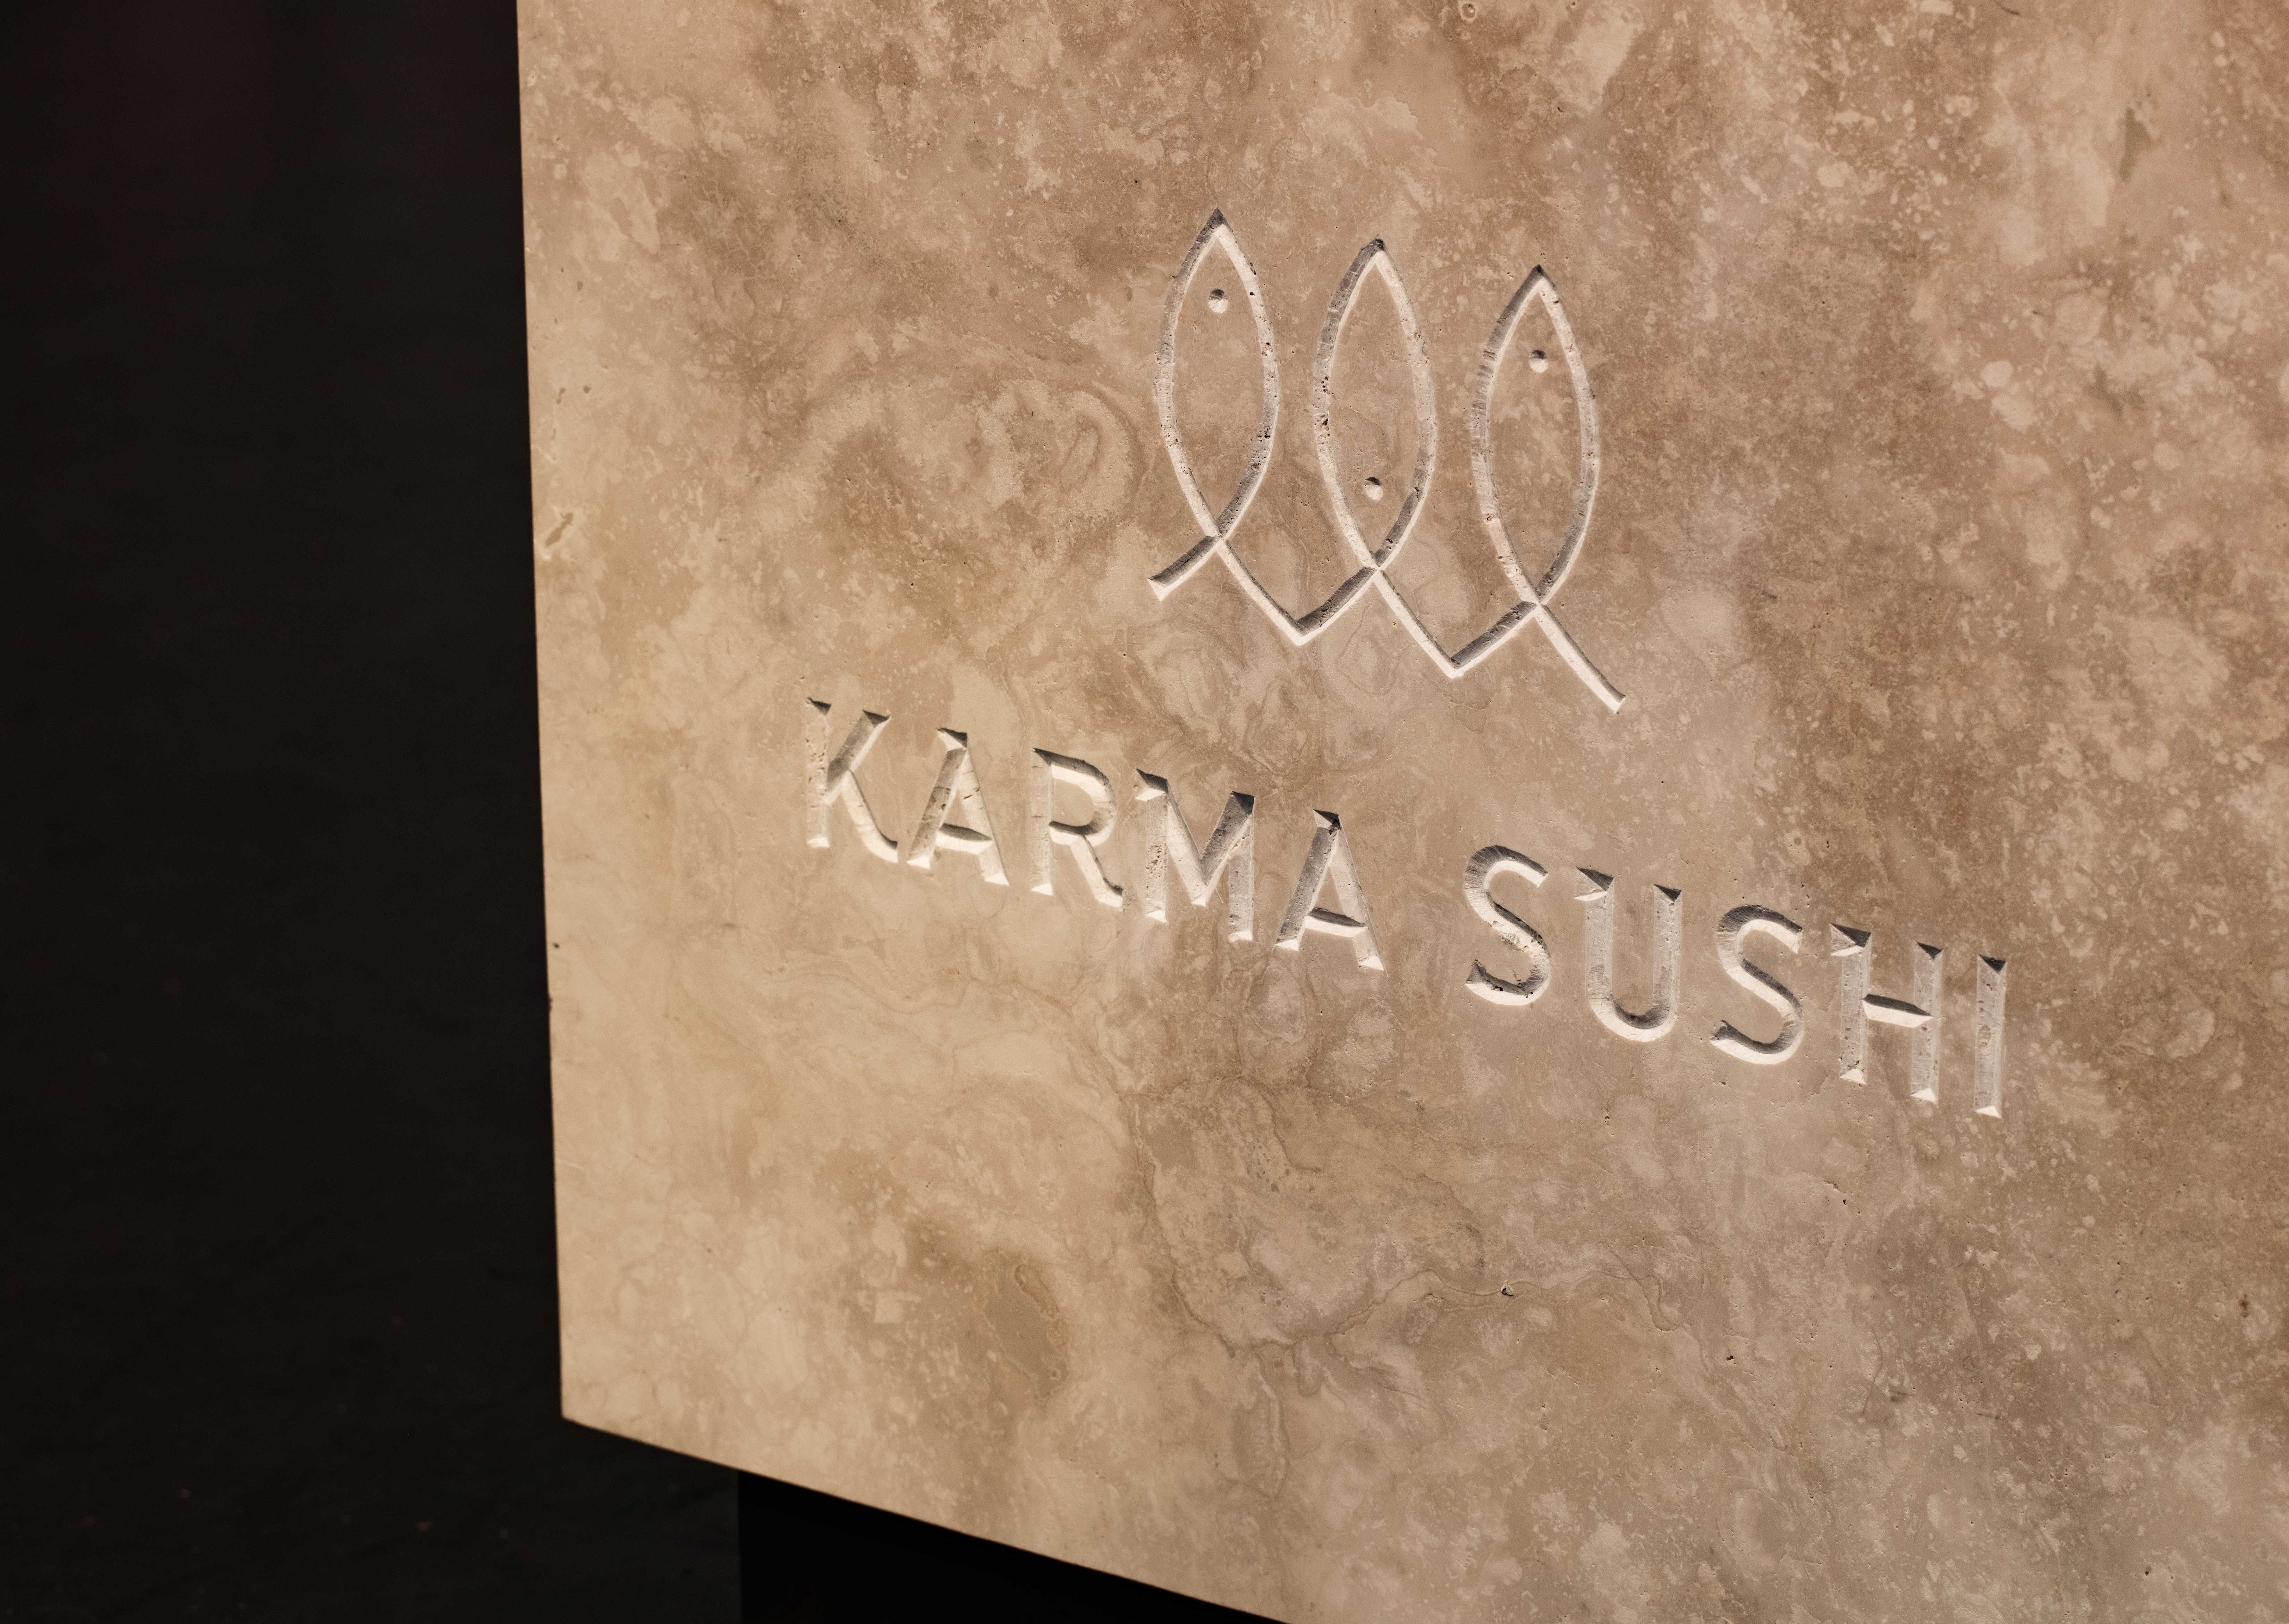 For The New Karma Sushi Restaurant In Aarhus, The Interior Design Department  Of Henning Larsen Architects Has Created An Interior Design With An  Atmosphere ...